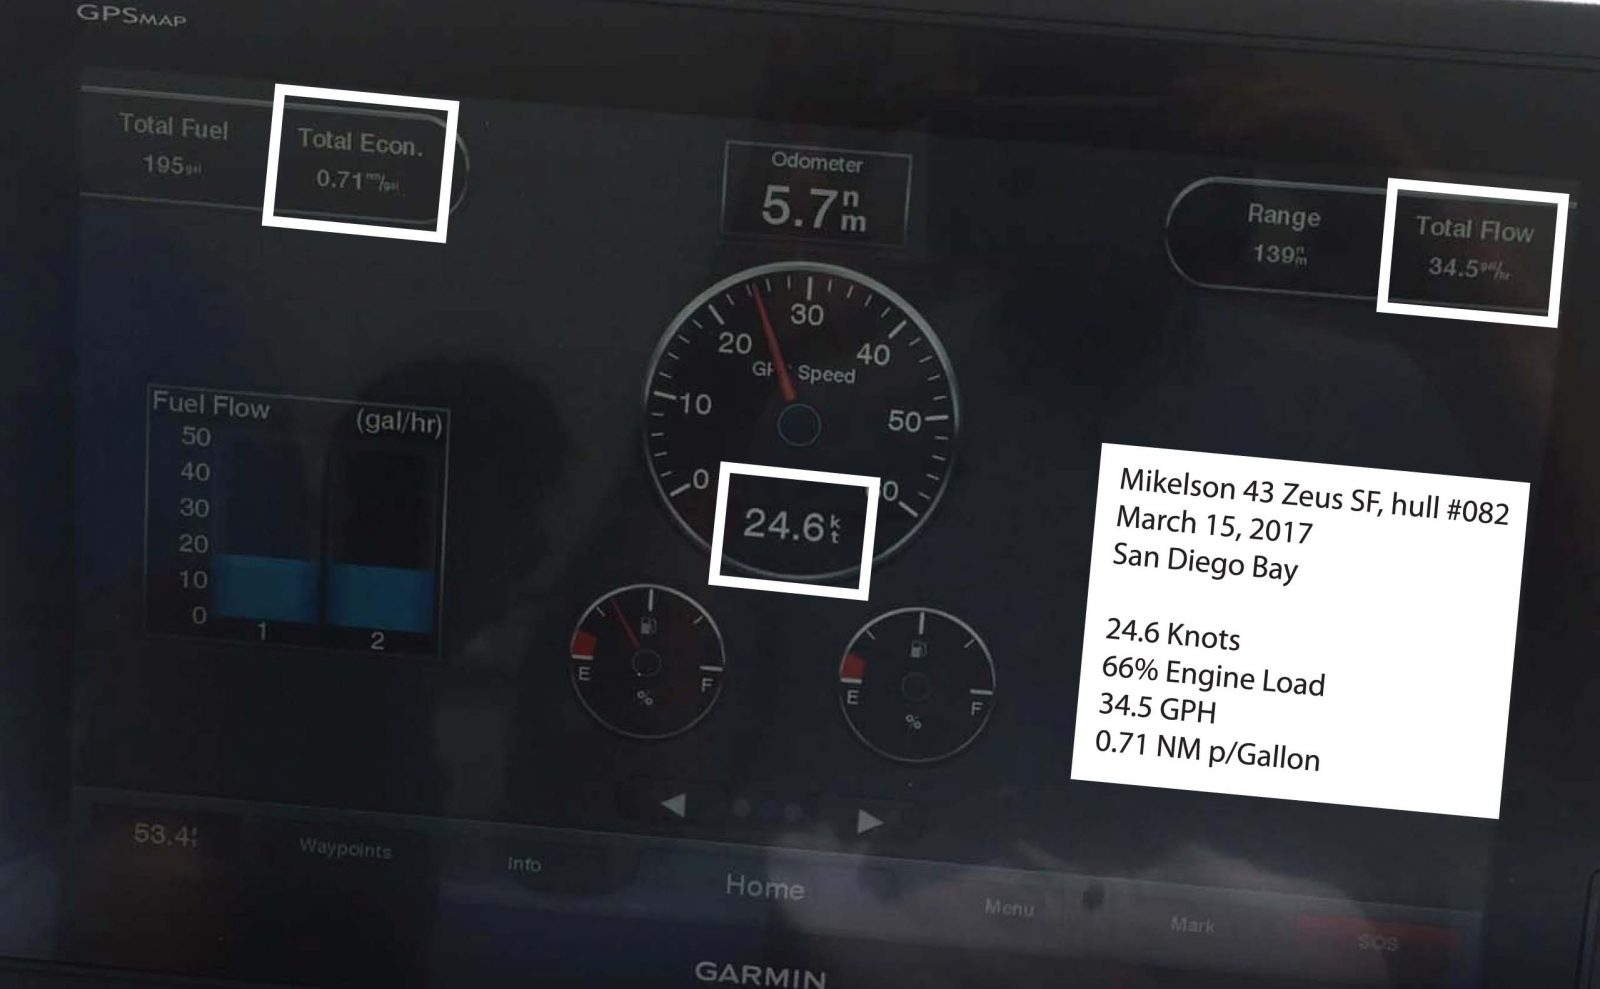 How can the Mikelson 43 Zeus be so efficient AND so fast?